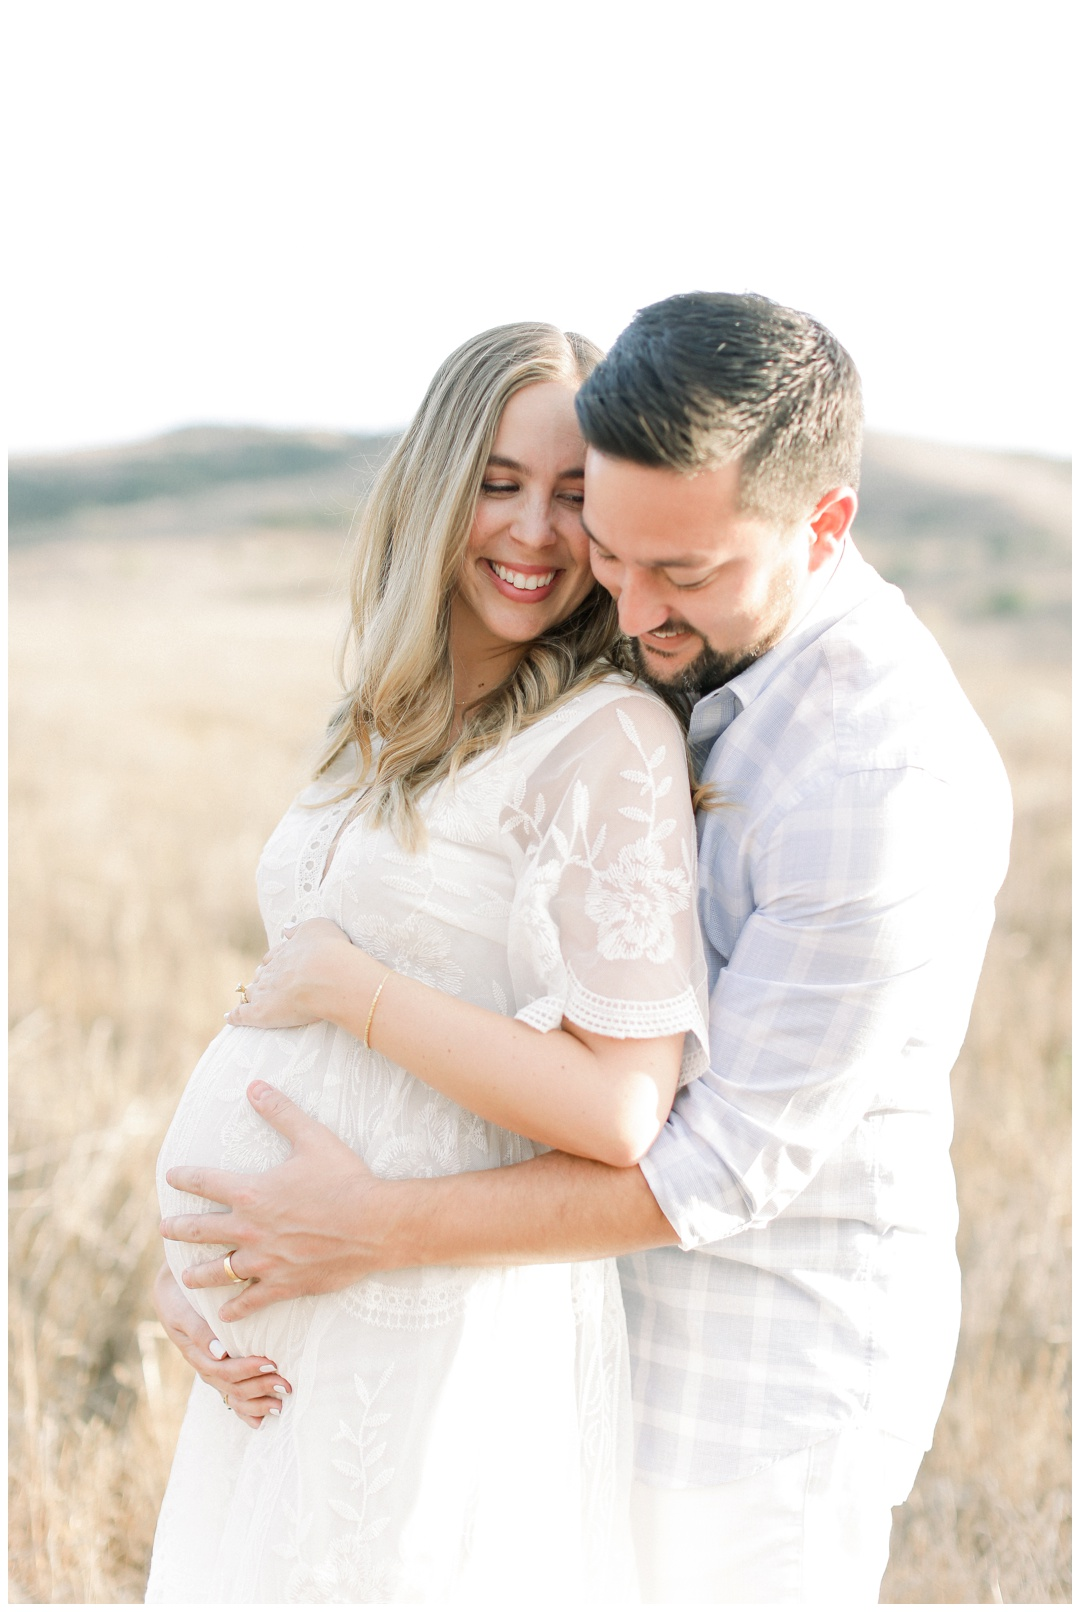 Newport_Beach_Maternity_Photographer_Newport_Beach_Maternity_Photography_Orange_County_Photography_Cori_Kleckner_Photography_Orange_County_Quail_Hill_Photography_The_Ritz_Carlton_Laguna_Niguel_Resort_ Maternity_Session__1827.jpg